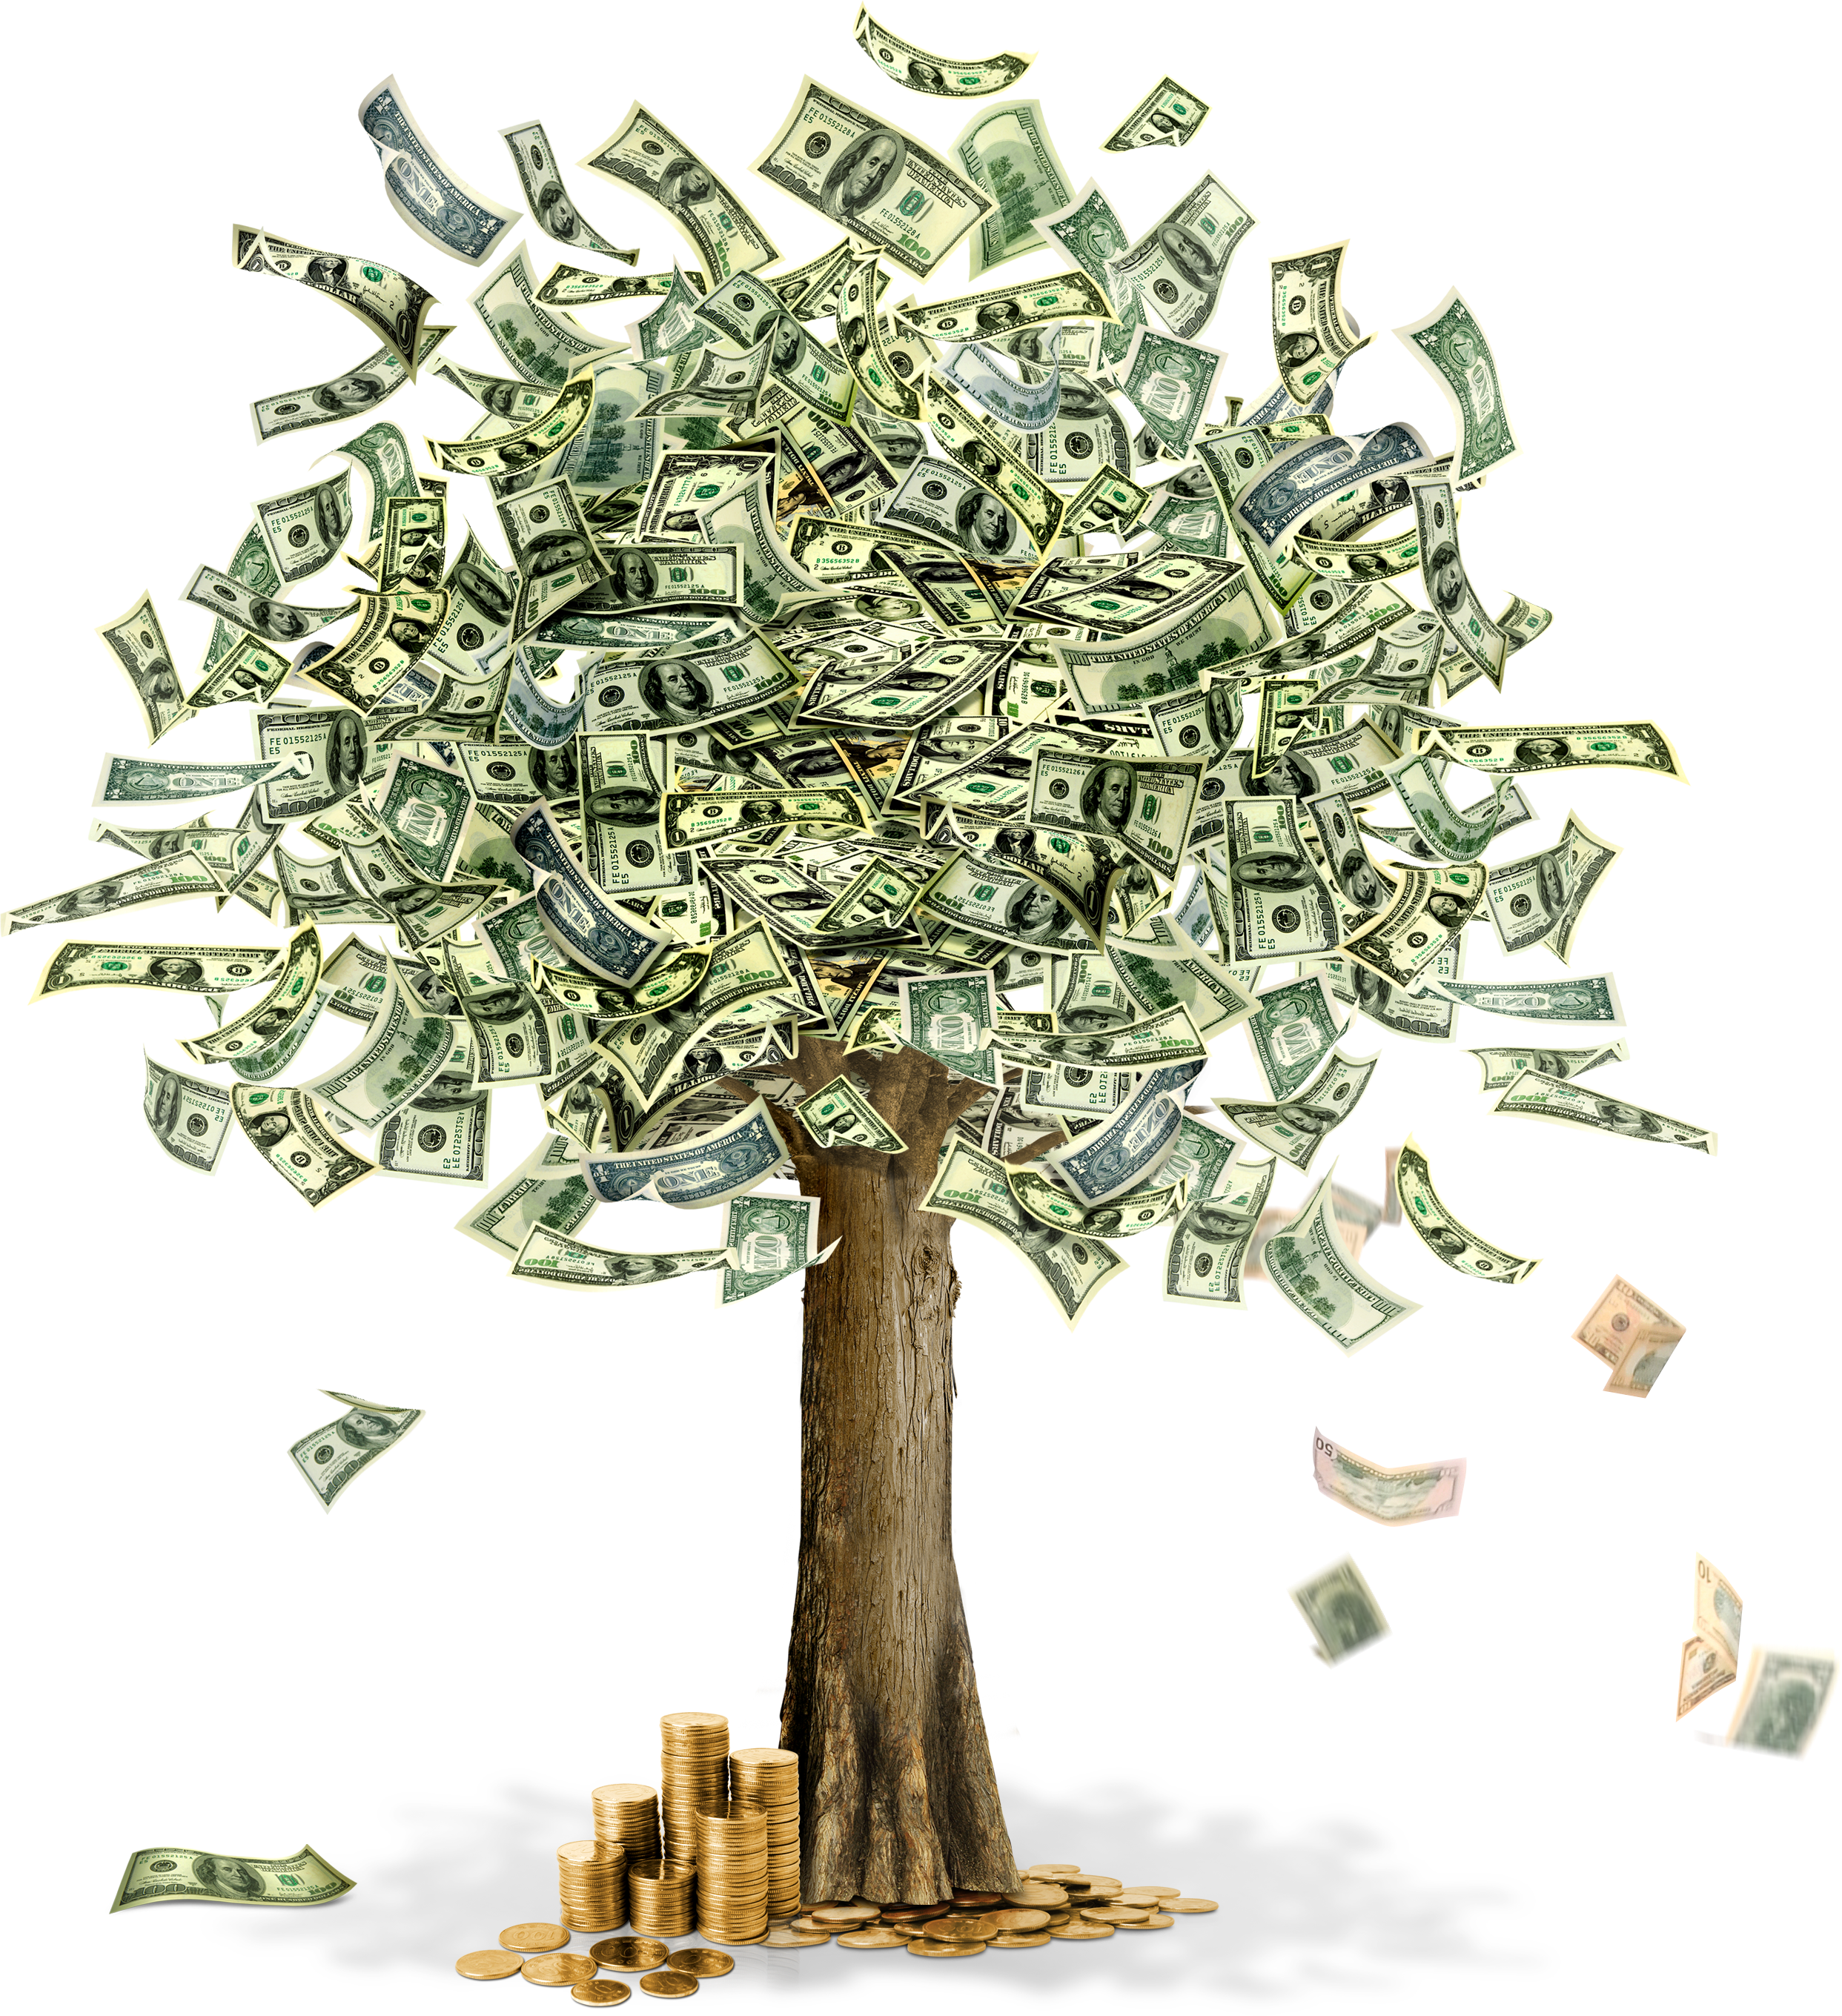 Money tree free clipart copyright free clip art black and white download Money Tree Drawing at GetDrawings.com | Free for personal use Money ... clip art black and white download